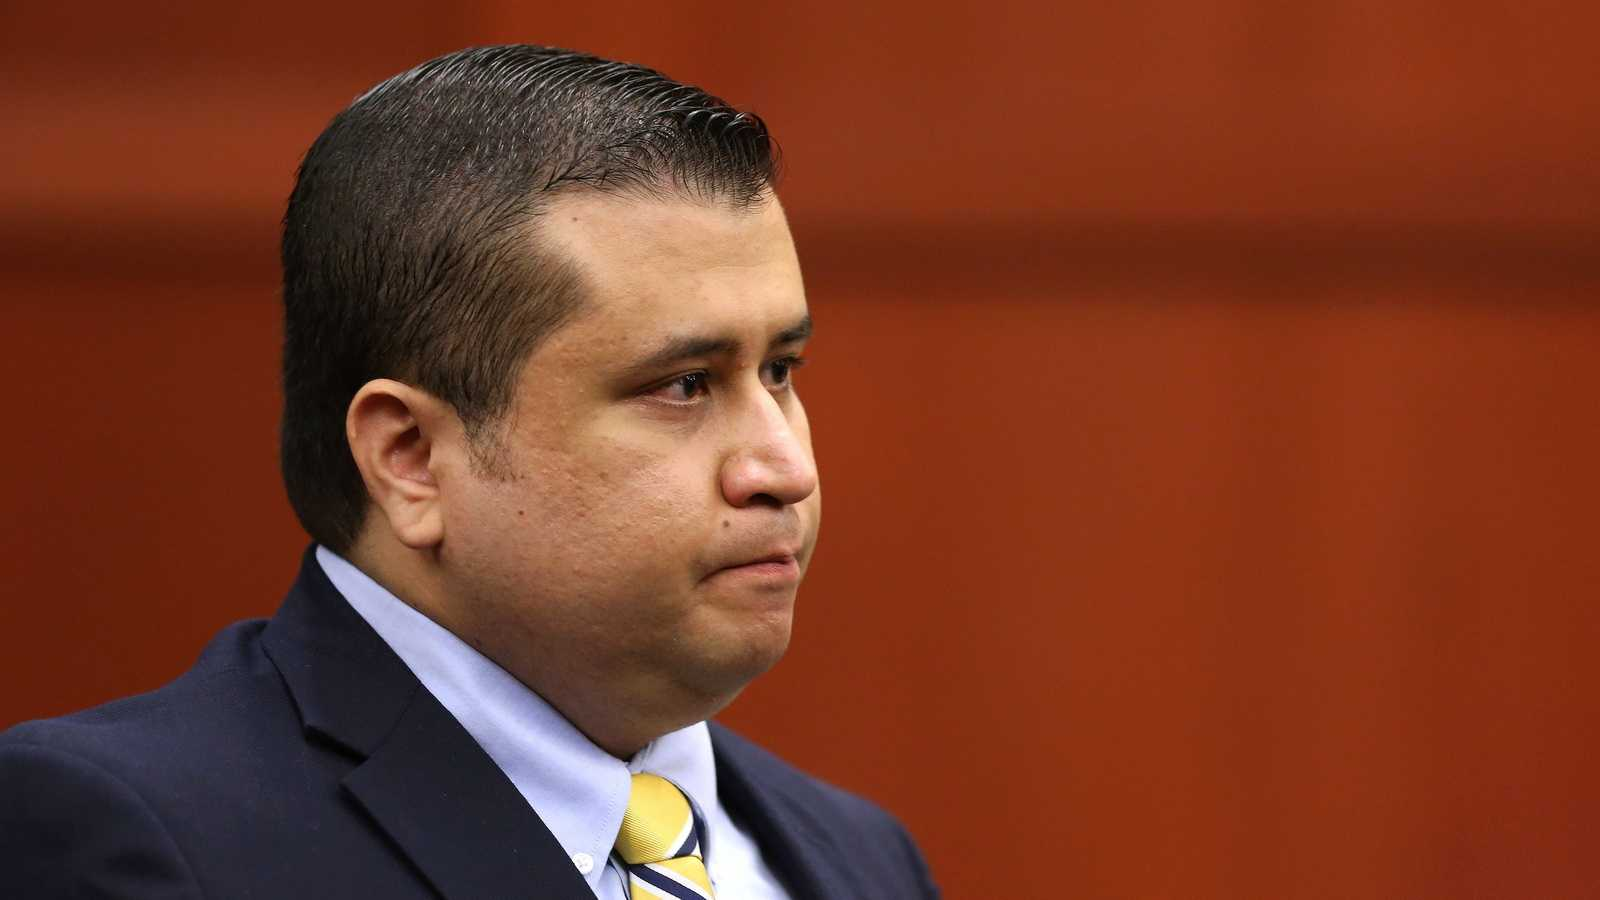 See 50 key moments in the murder trial of George Zimmerman.